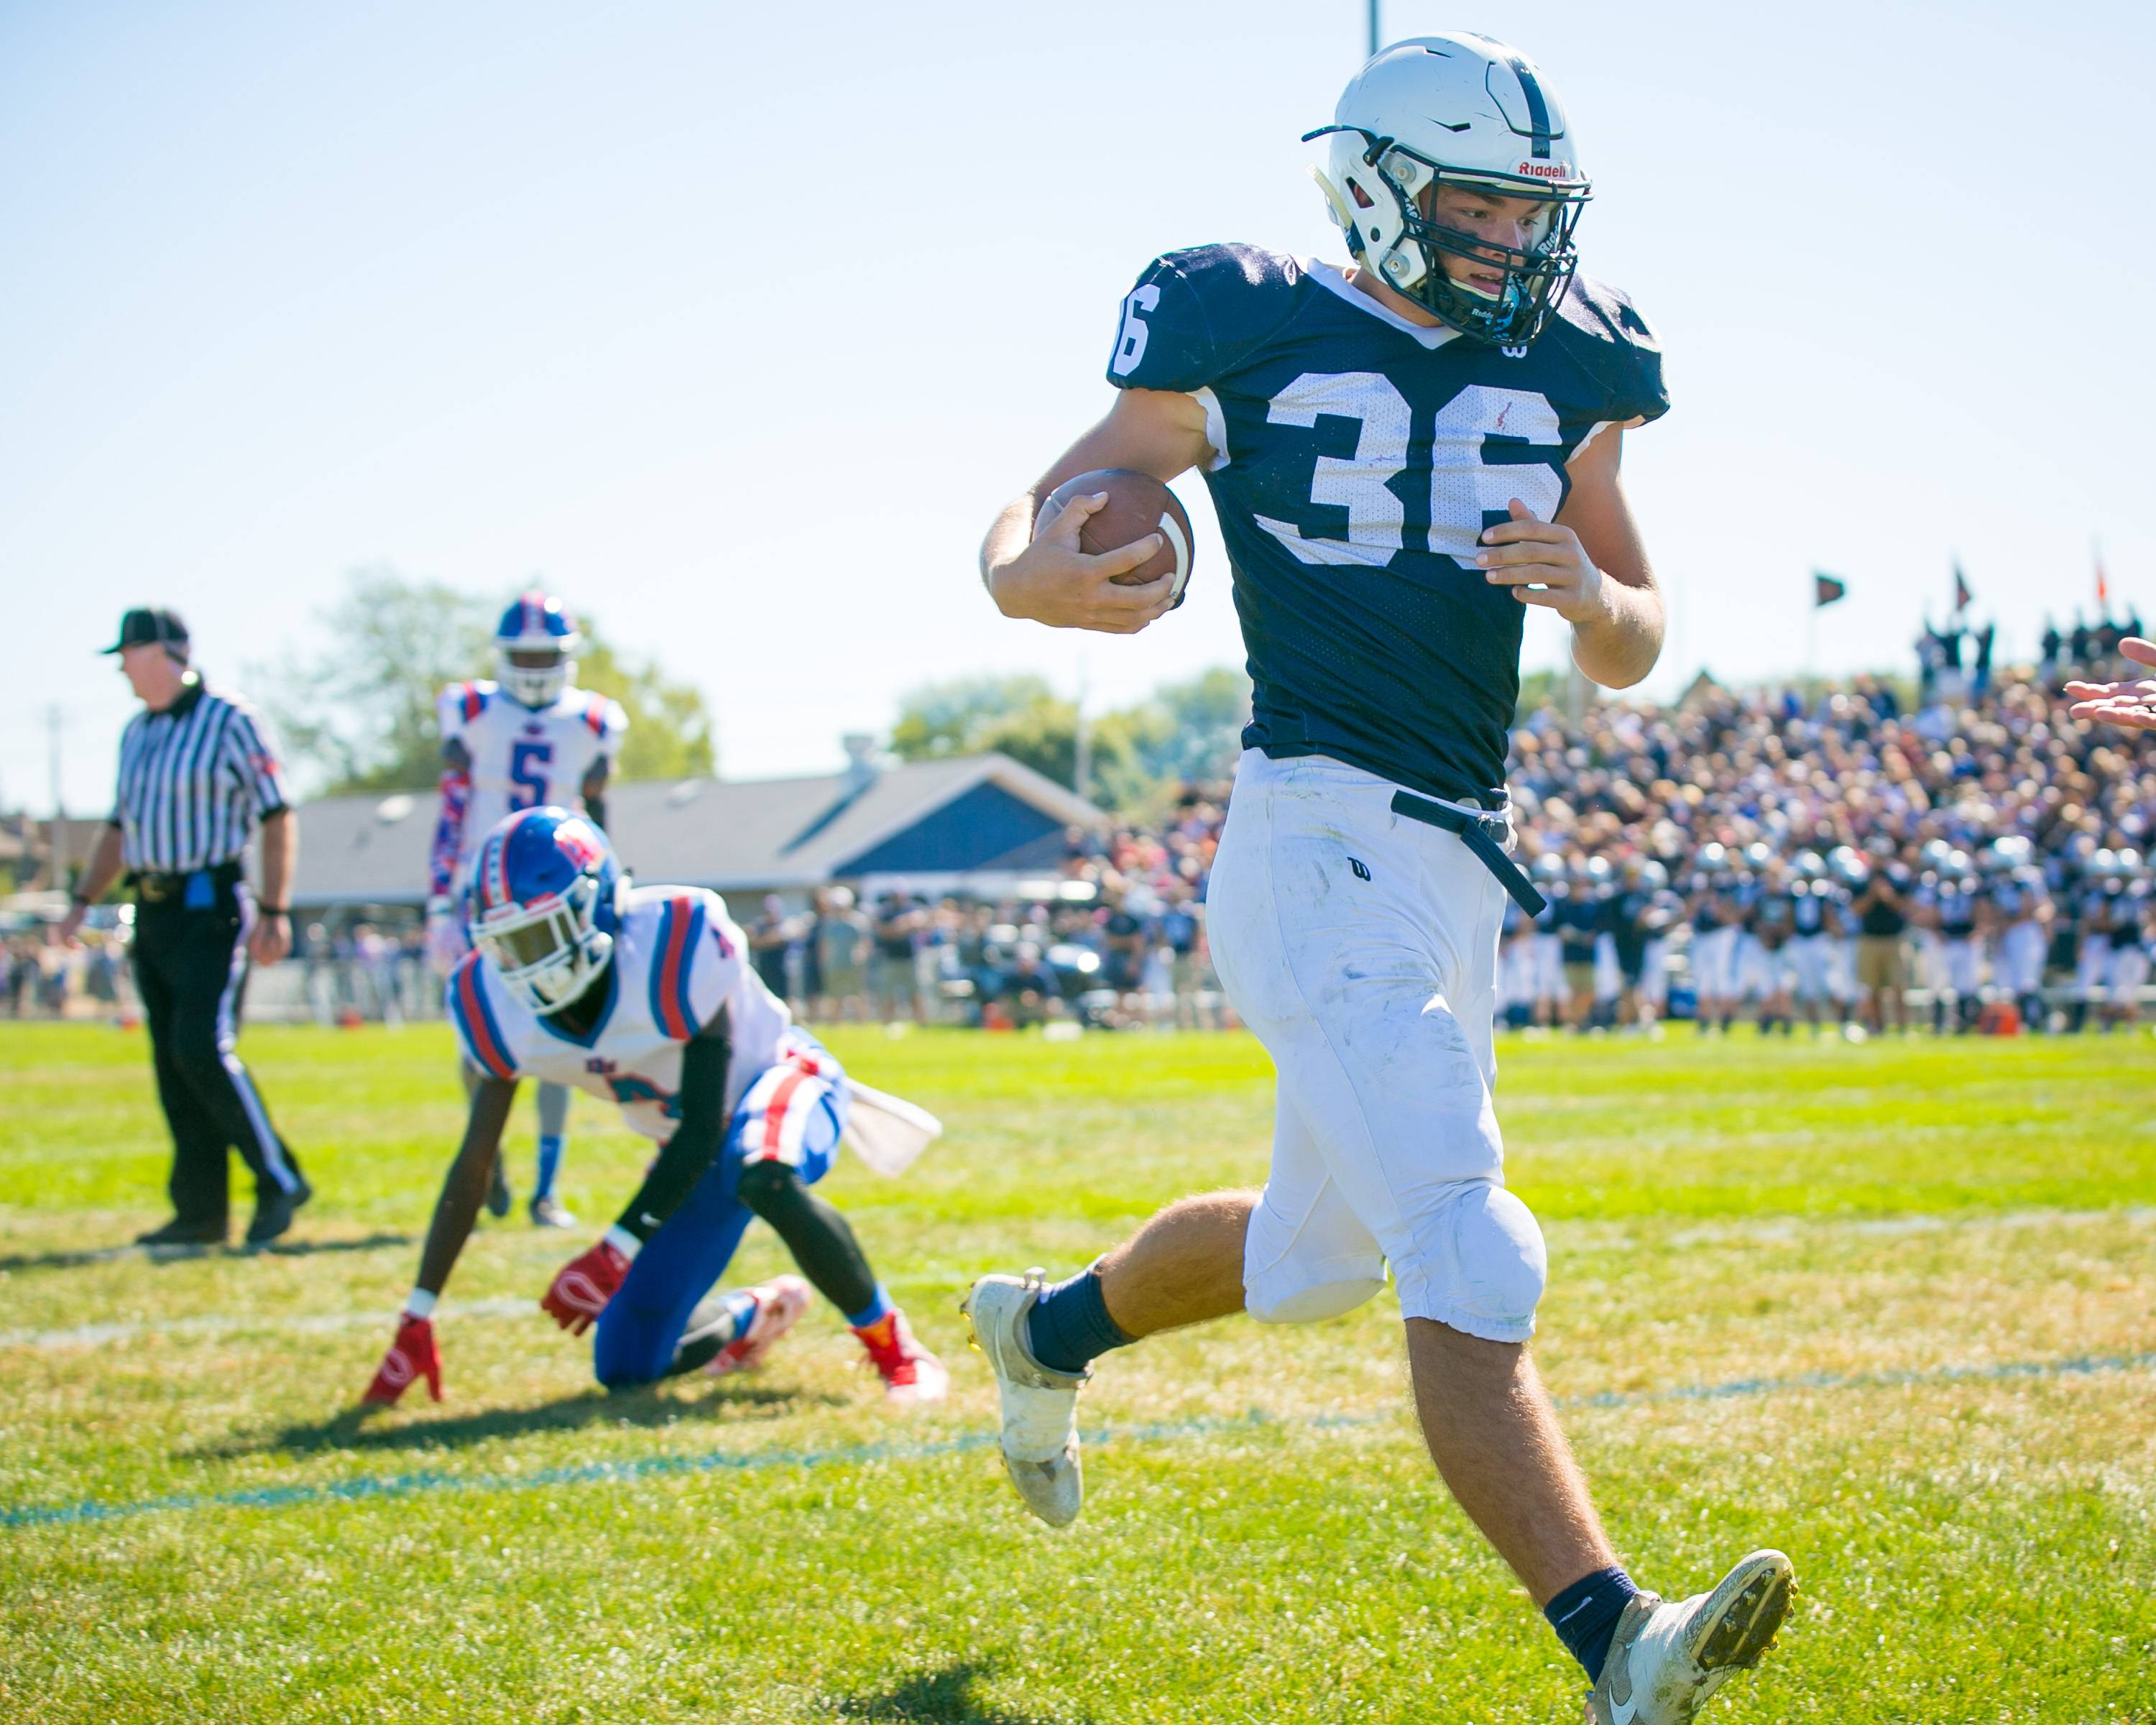 Cary-Grove's Max Buss is one of many talented returning players in the Trojans' backfield this season.